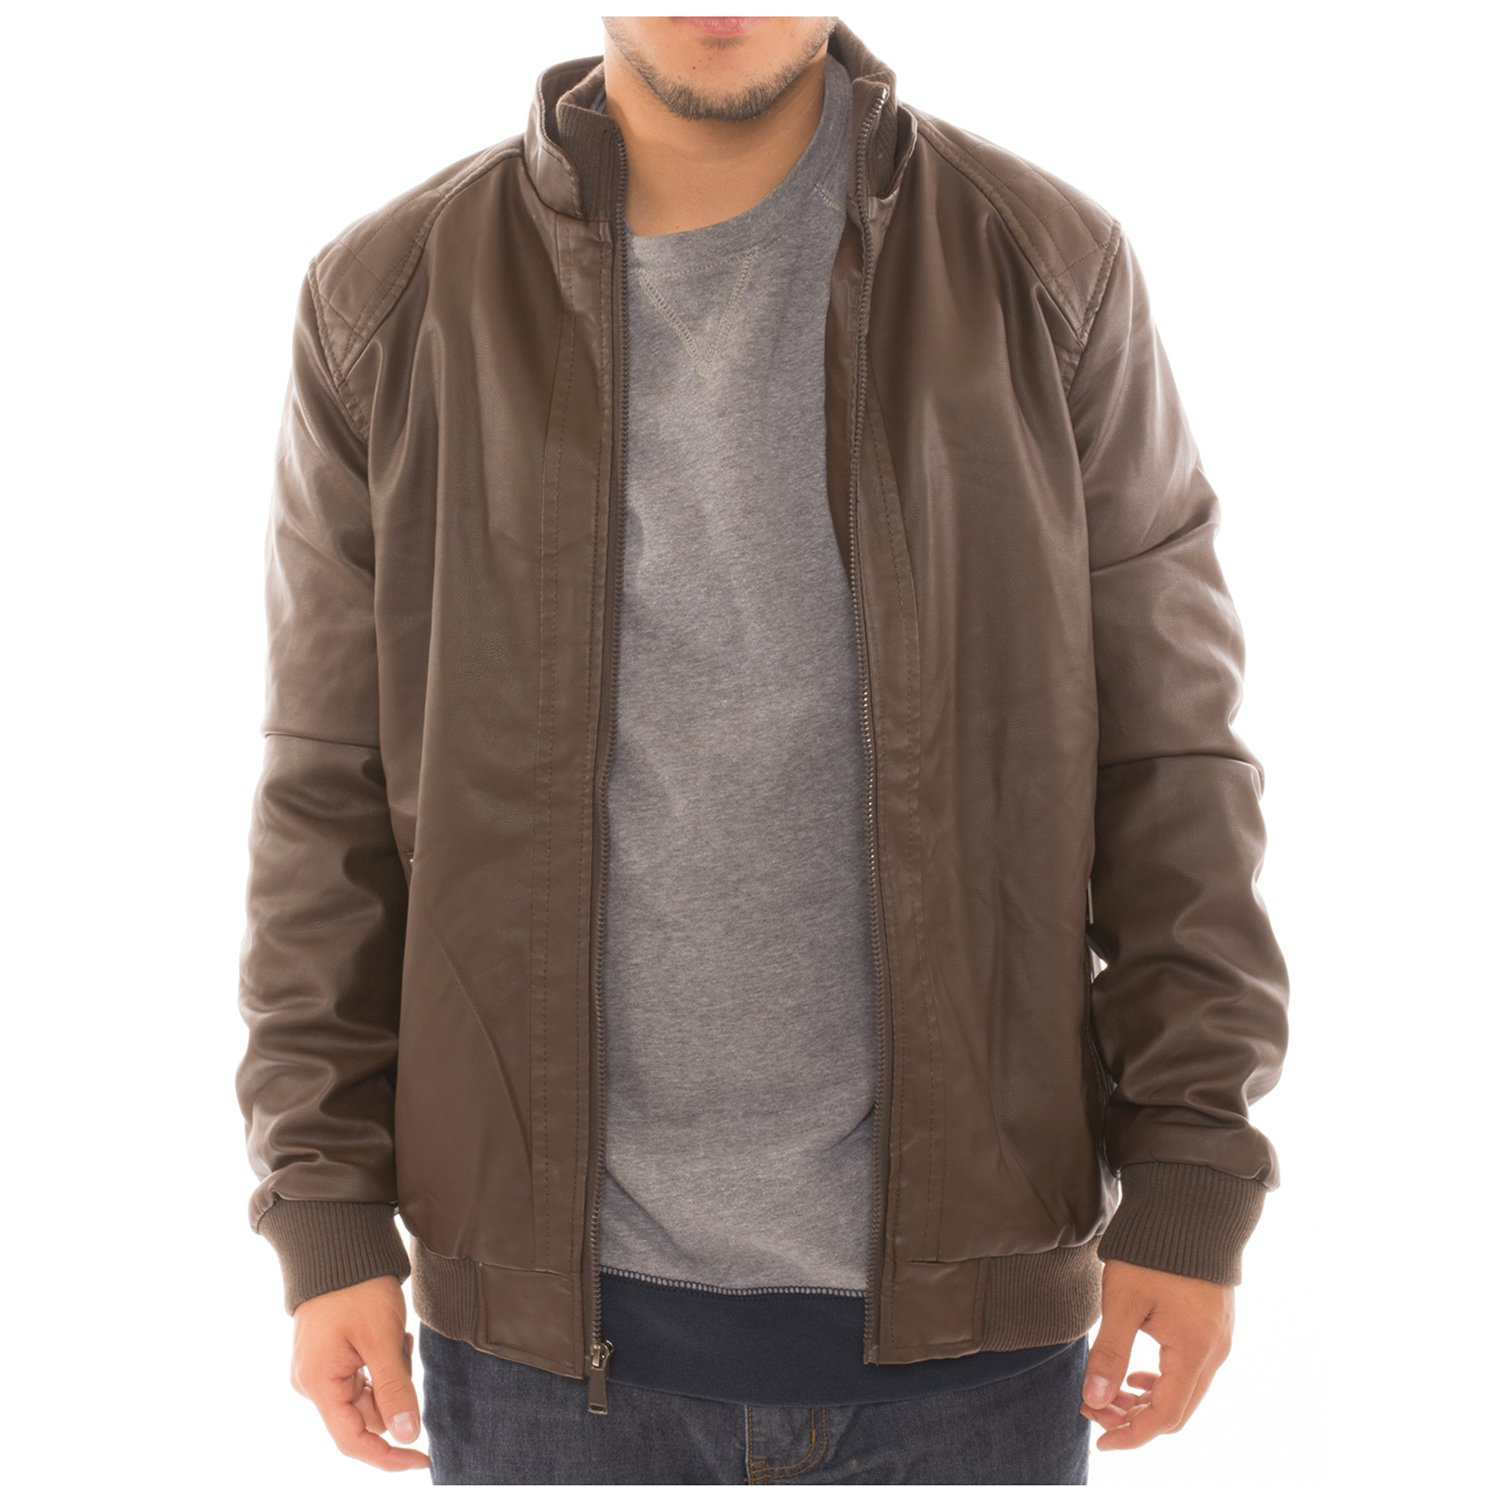 Men's Motorcycle Bomber Faux Leather Jacket Fleece Lined with Zippered Pockets - Brown - S